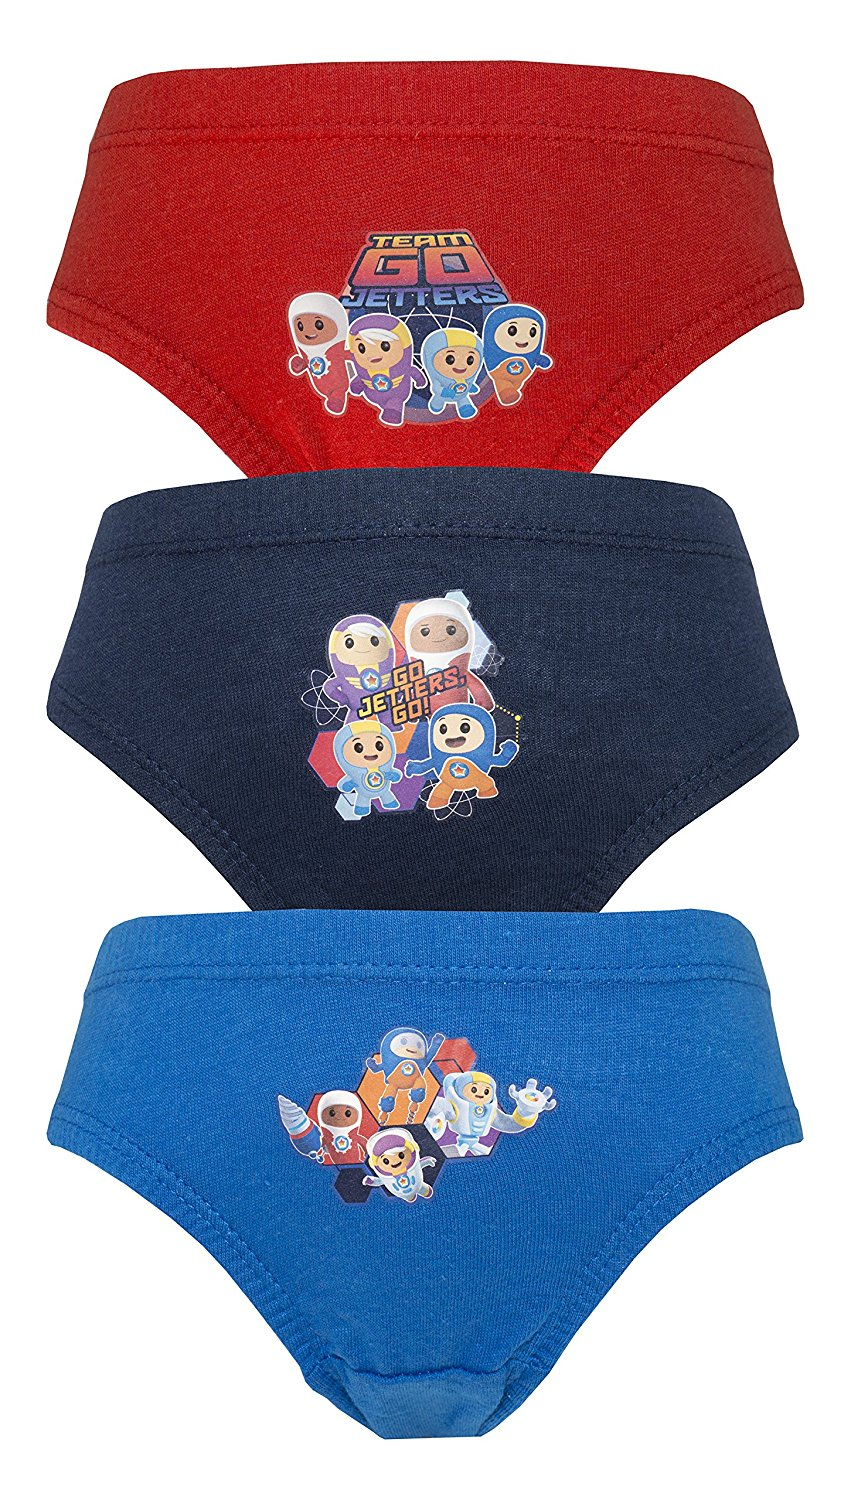 Cartoon Character Products CBeebies 3 Pack Boys Go Jetters Pants/Briefs Var - Blue/Red 2-3 years/98 cms